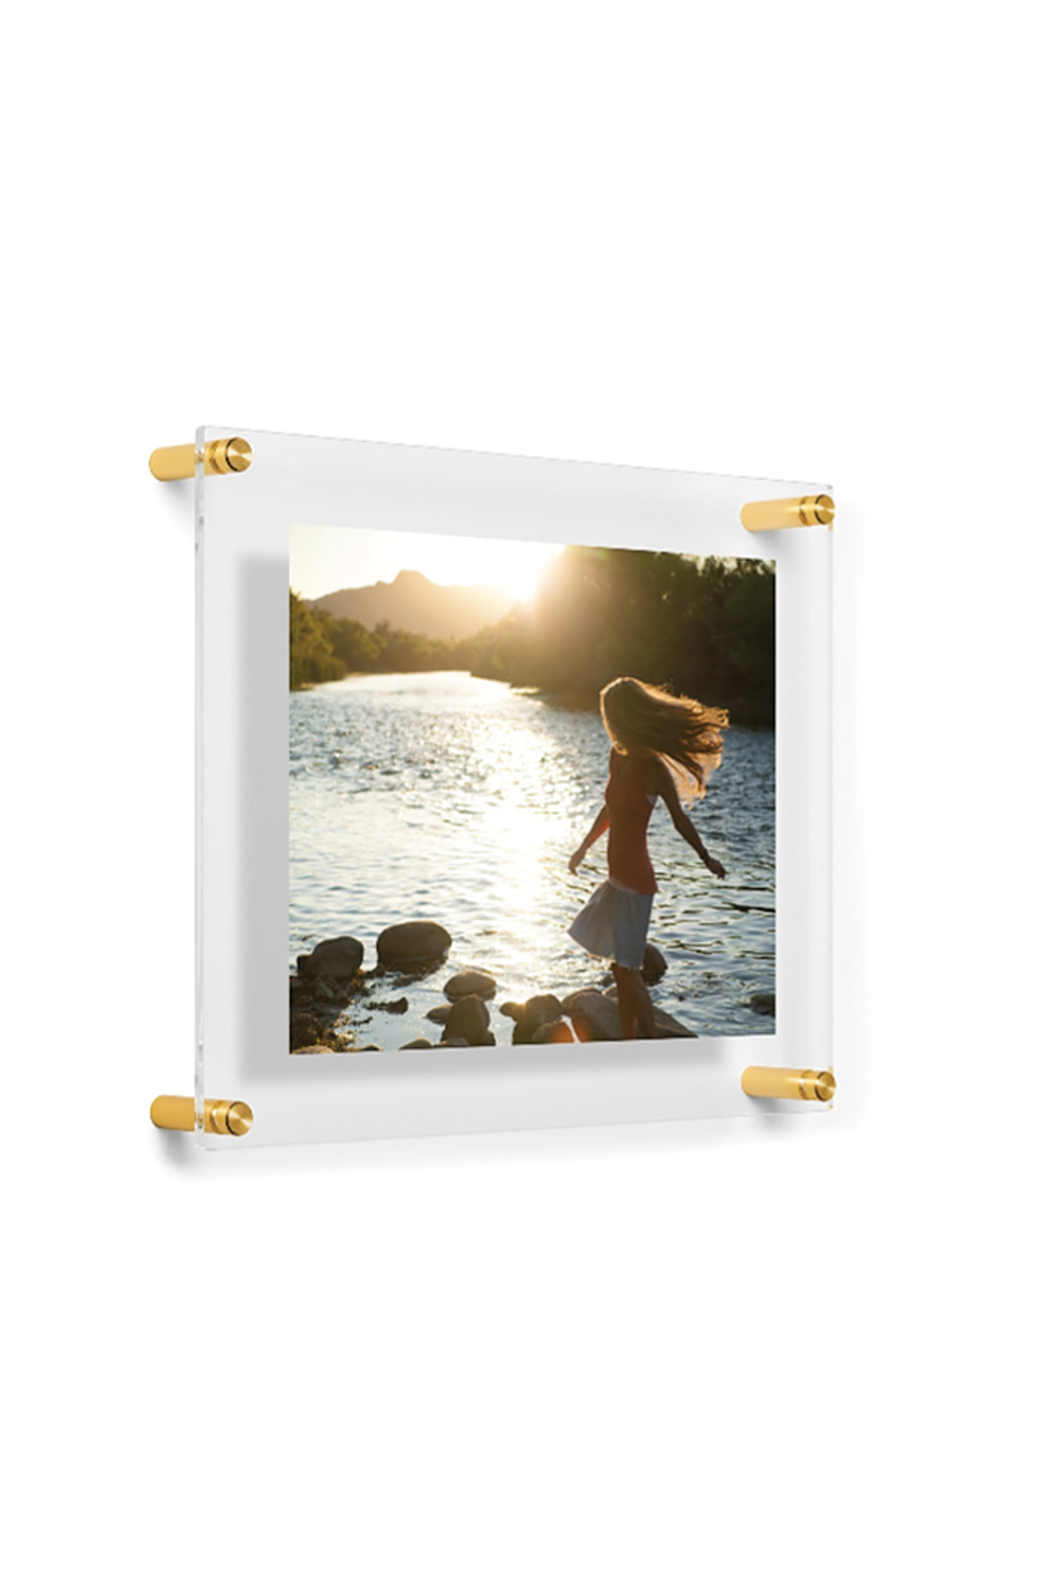 The Birds Nest 8X10/9X12-DOUBLE PANEL FLOATING FRAME(GLASS MEASURES 12X15) - Front Full Image